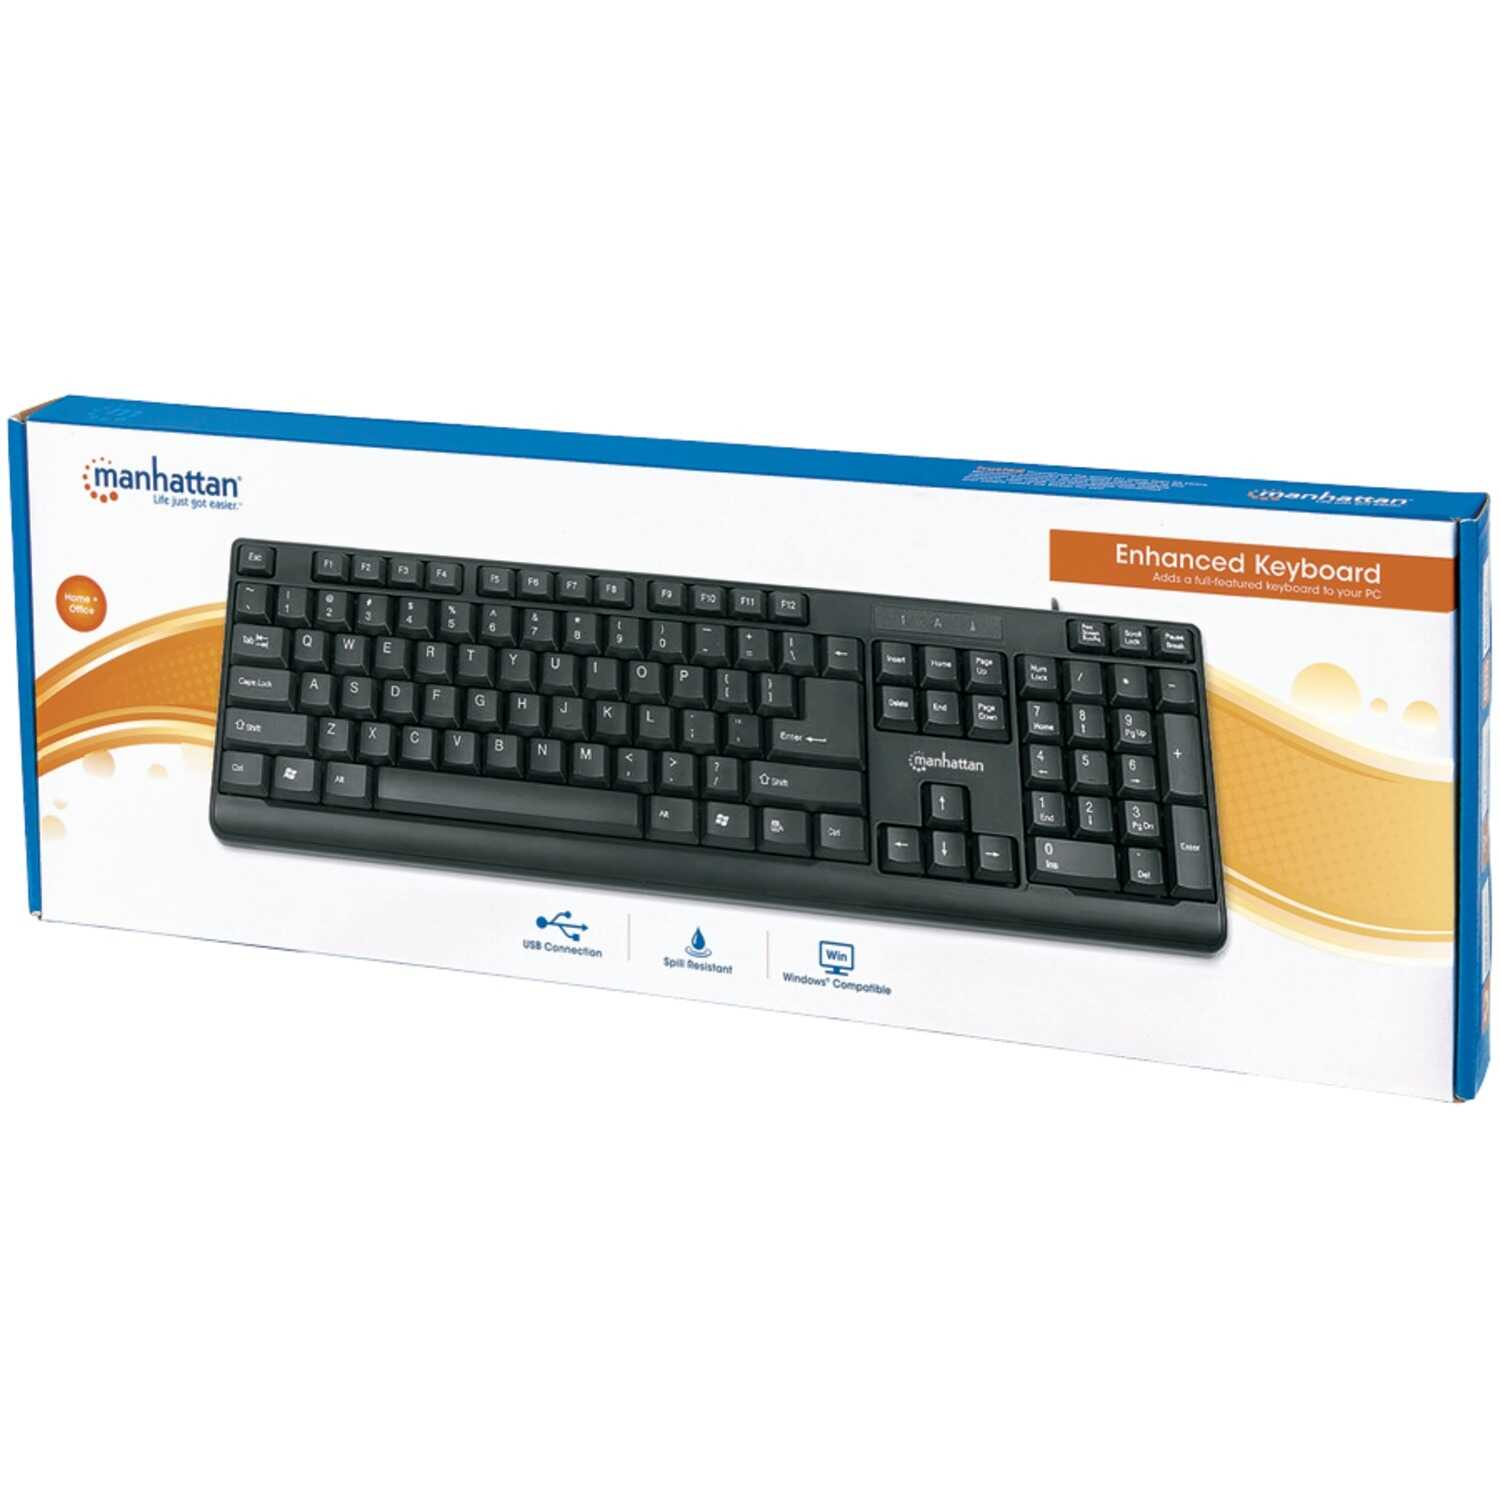 Manhattan  Enhanced  Keyboard  1 pk